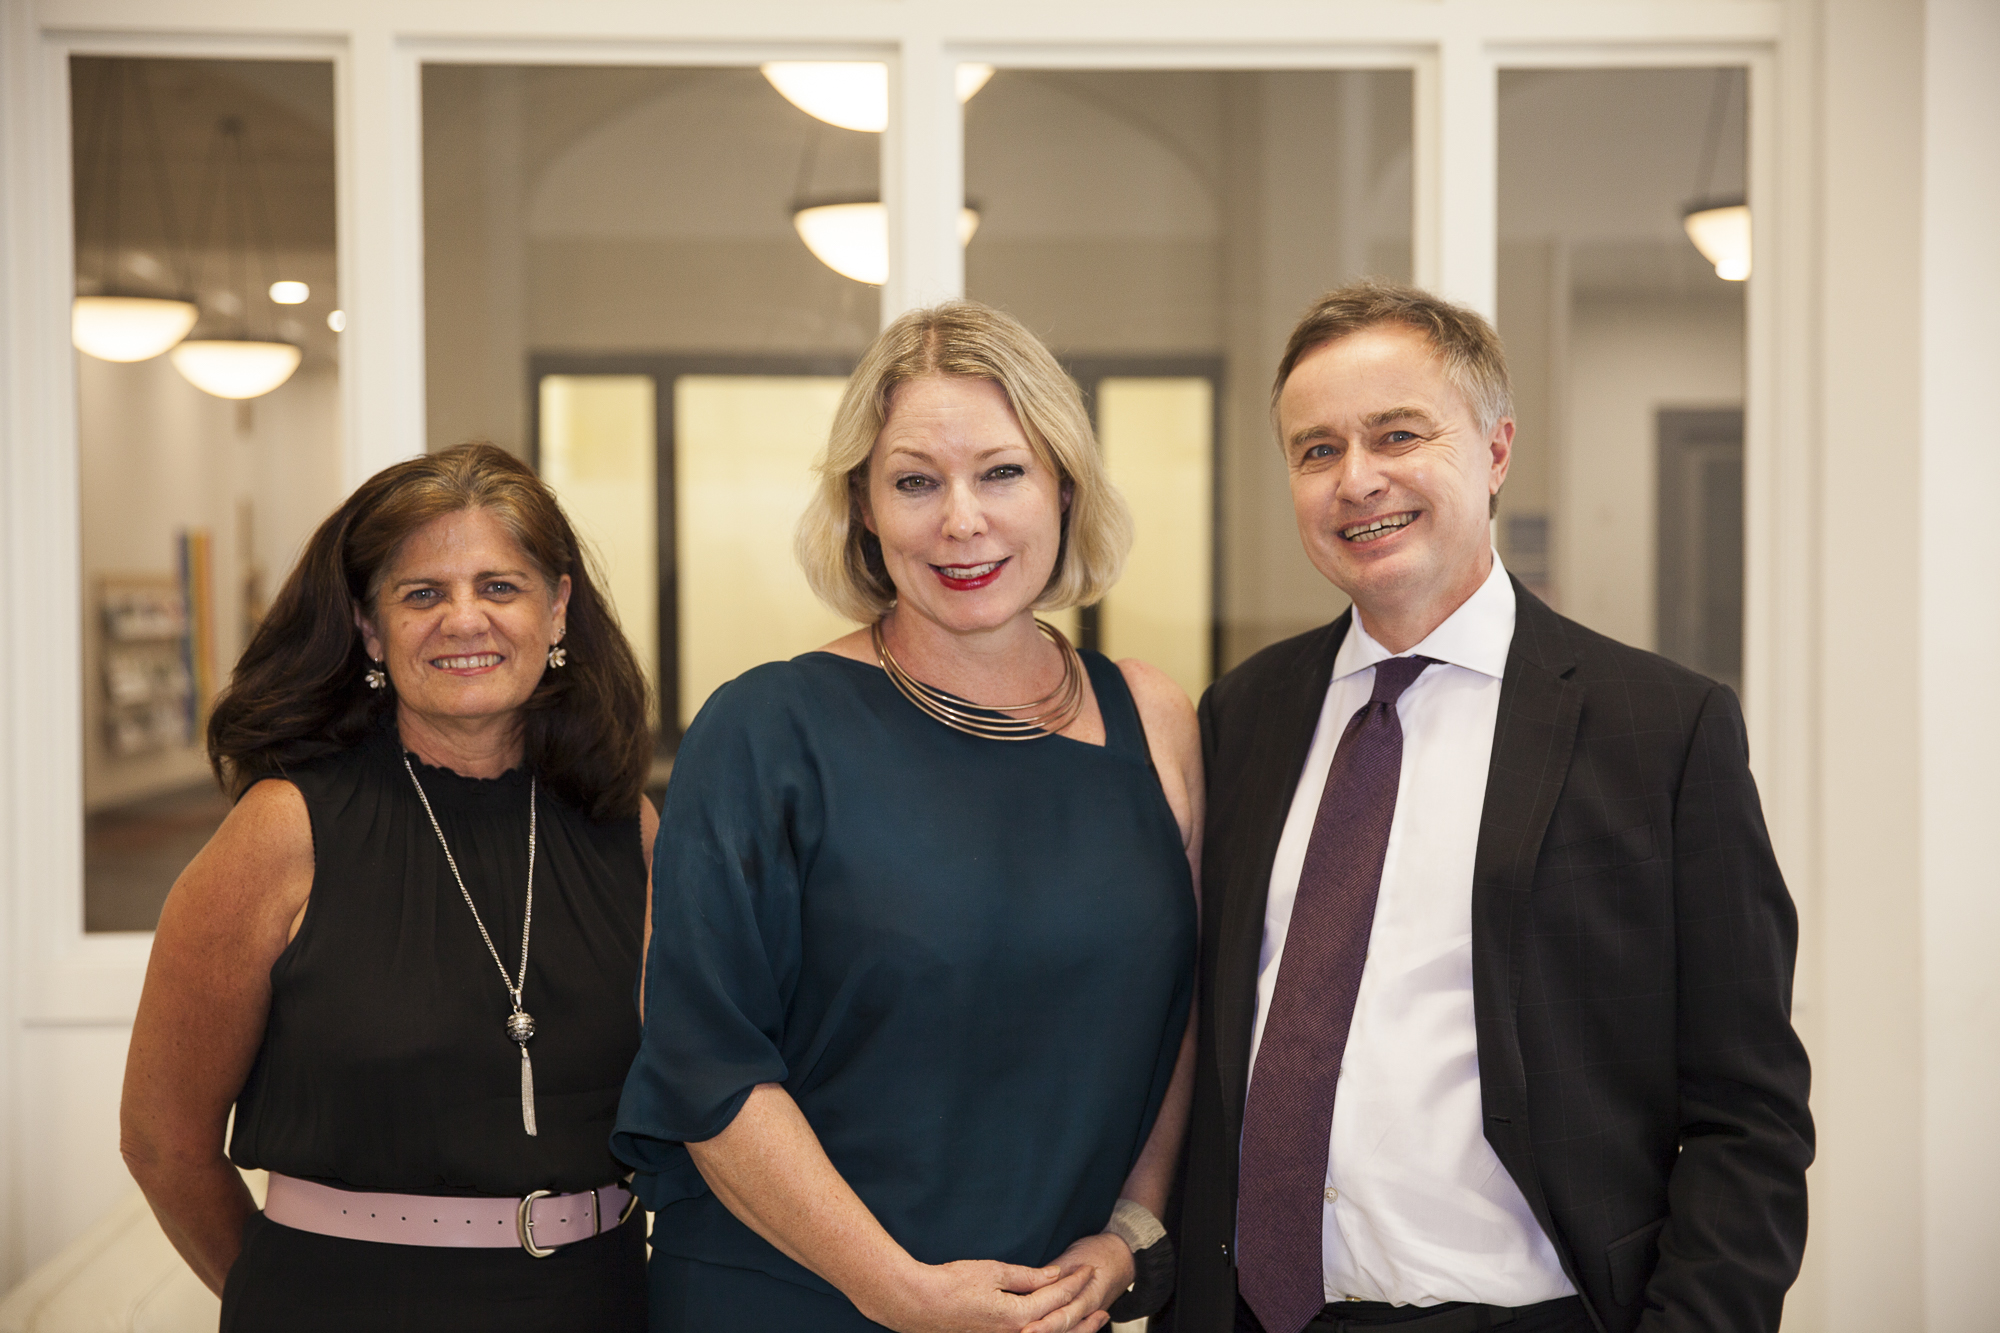 New Be. Lab CEO Sue Russell with Be. Lab founder, Minnie Baragwanath and Board Chairman, John Allen